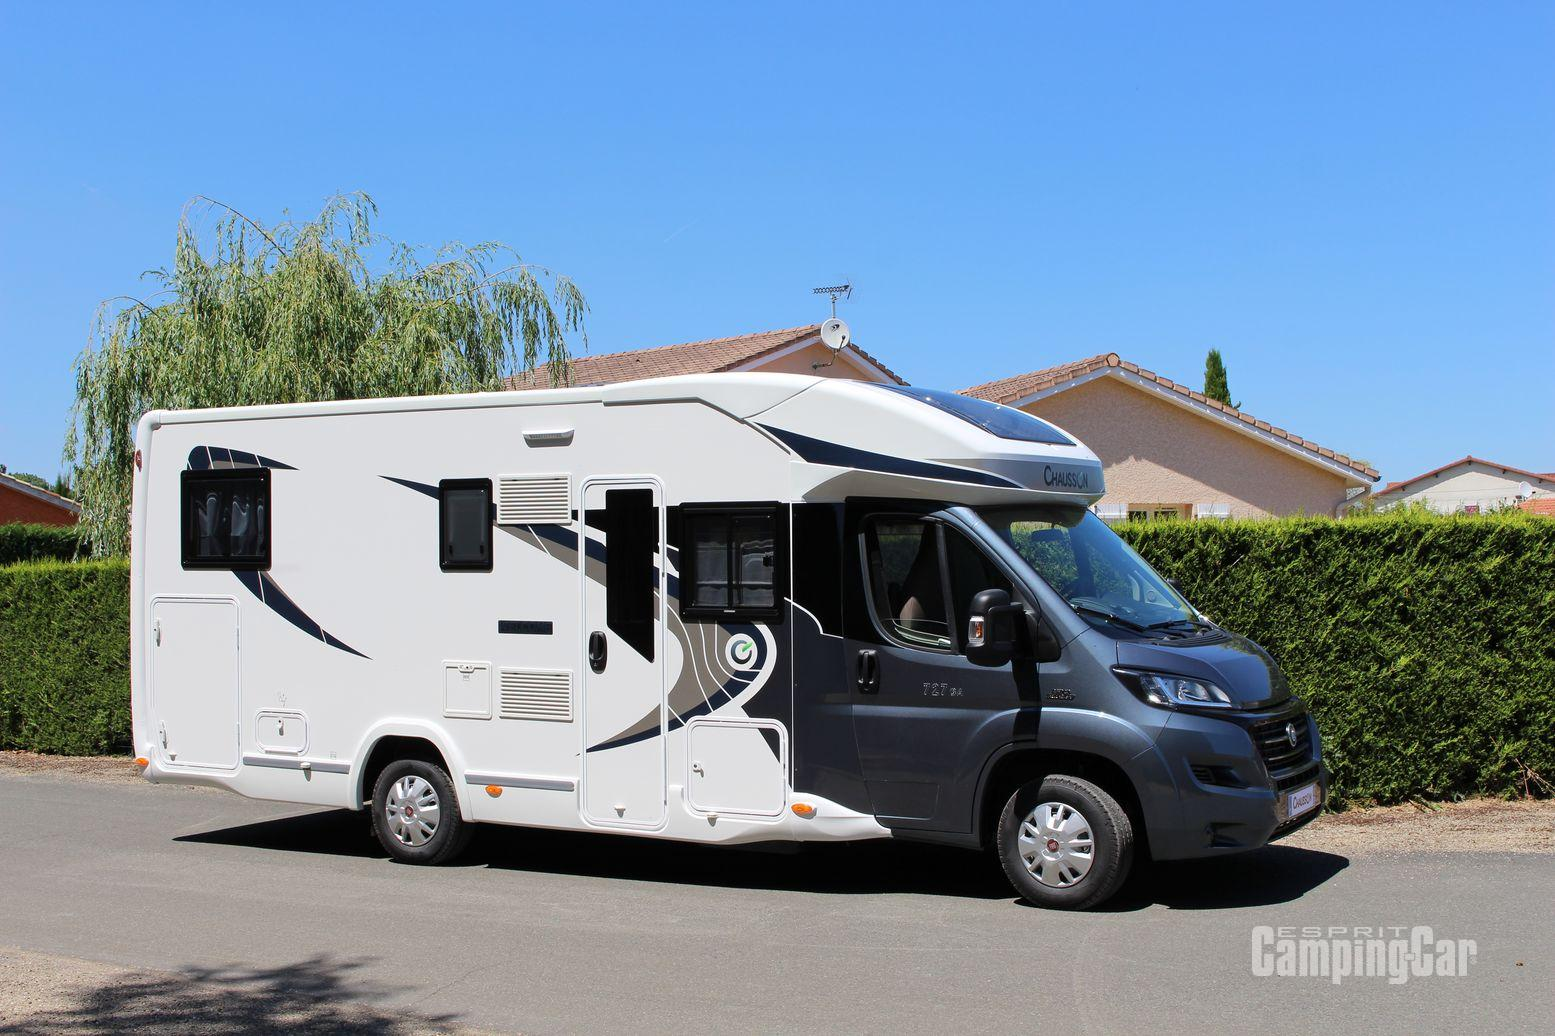 Occasion camping car profile lits jumeaux